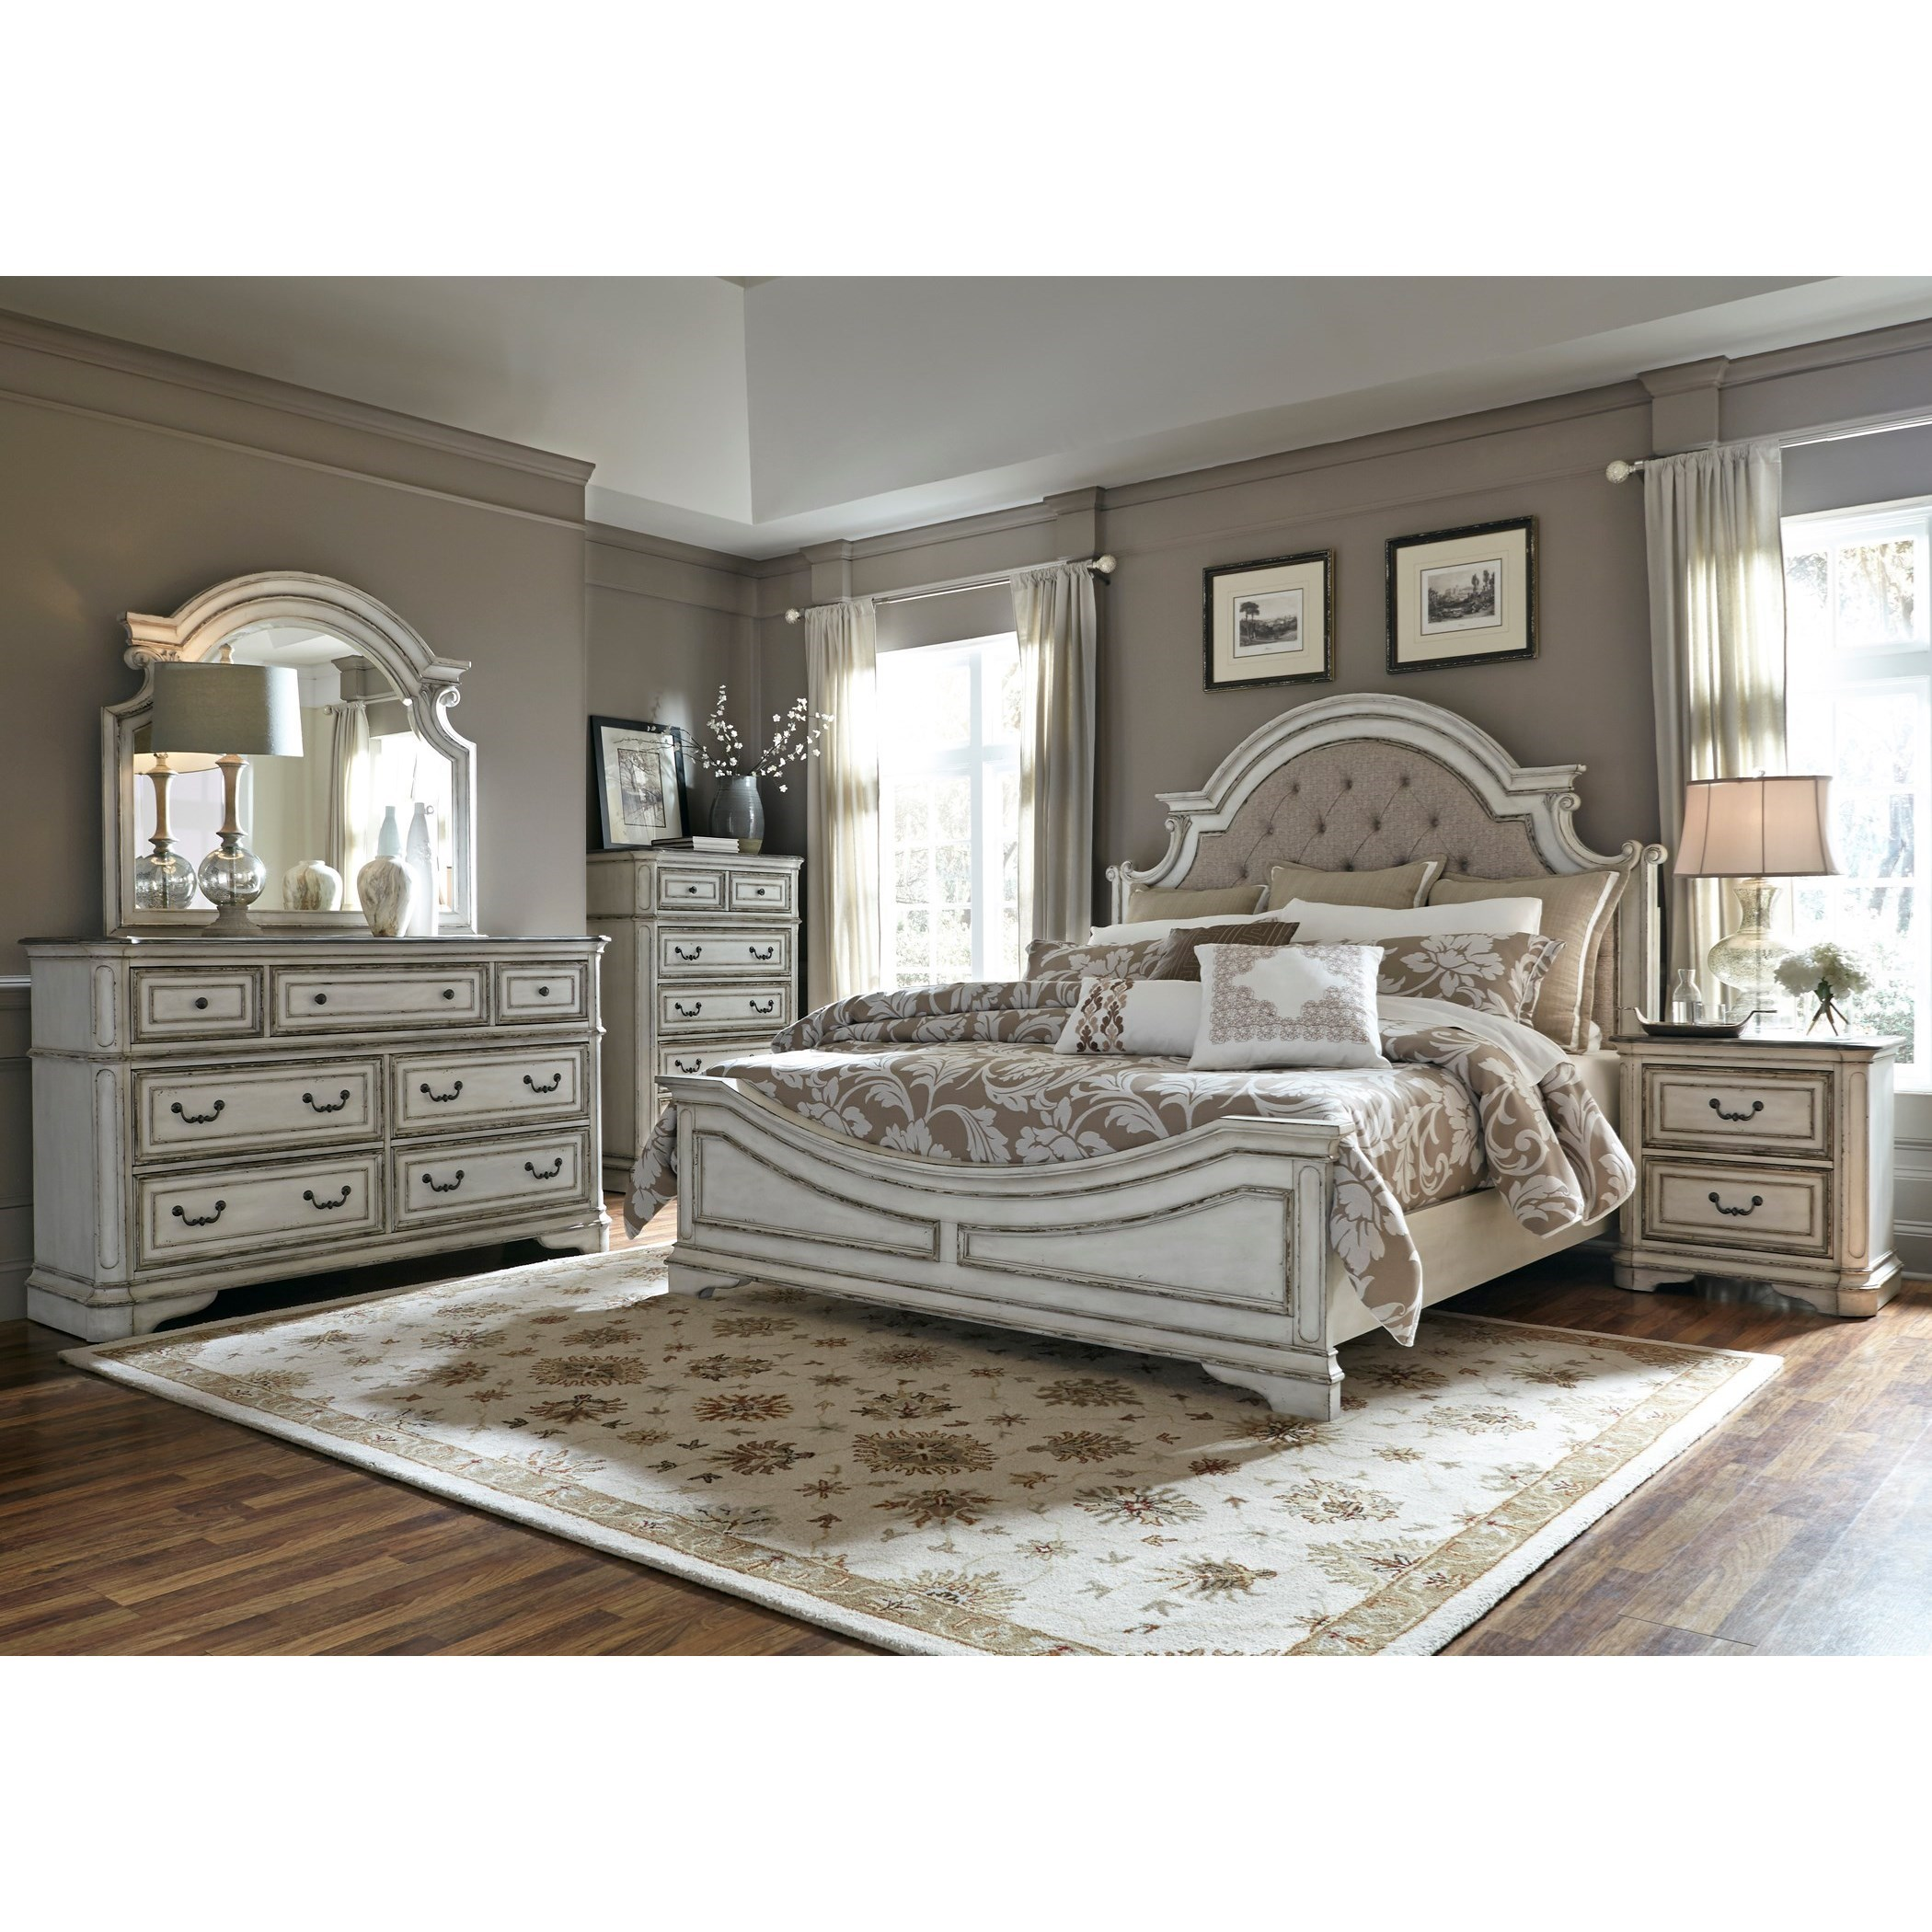 Magnolia Manor Queen Bedroom Group by Liberty Furniture at Furniture and ApplianceMart